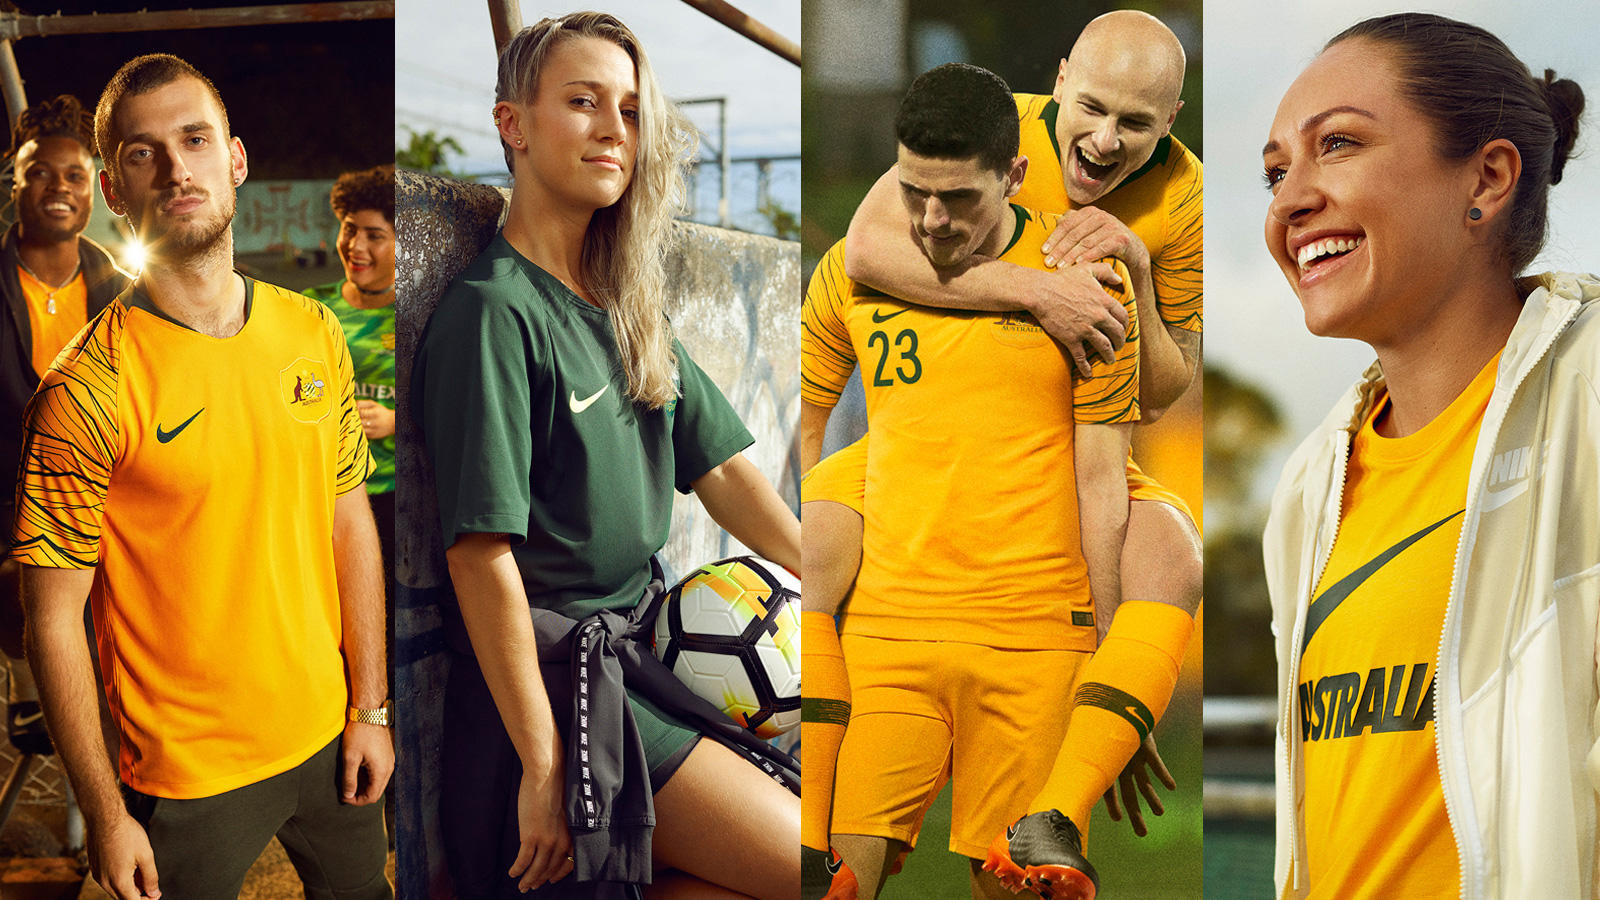 Nike news 2018 australia jersey group hd 1600 hd 1600